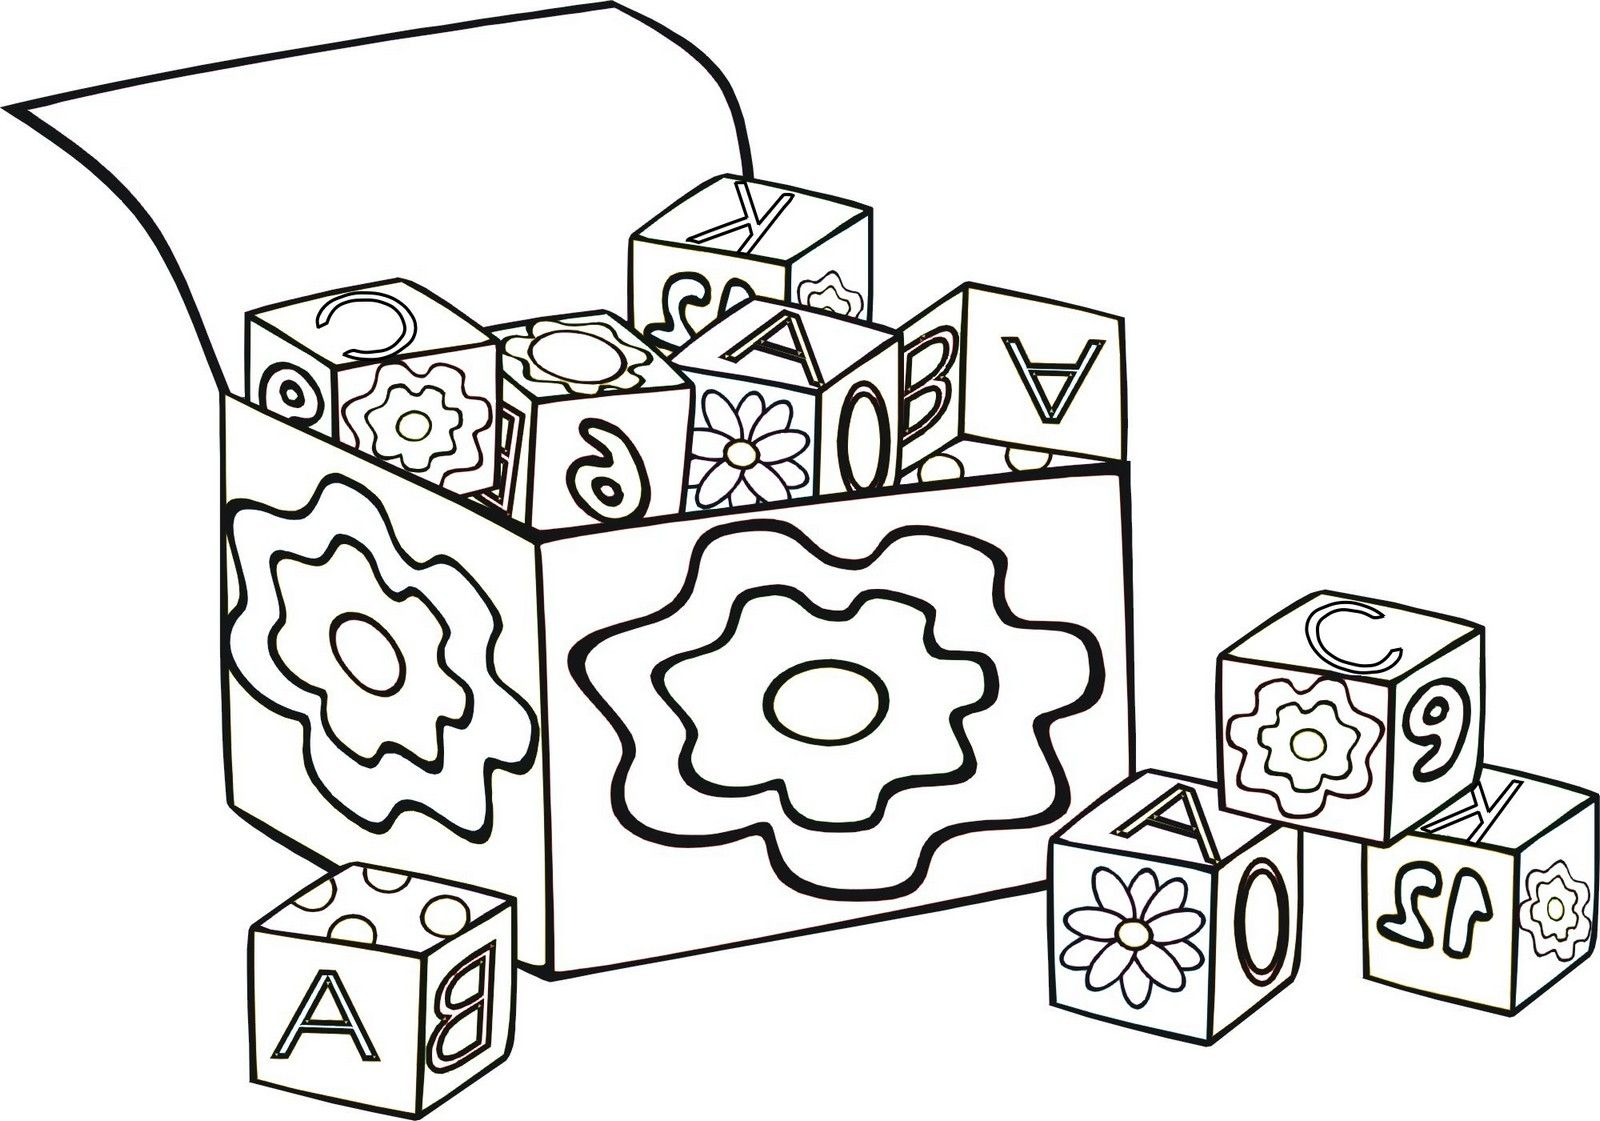 10 Fun and Simple Blocks Coloring Pages for Preschool